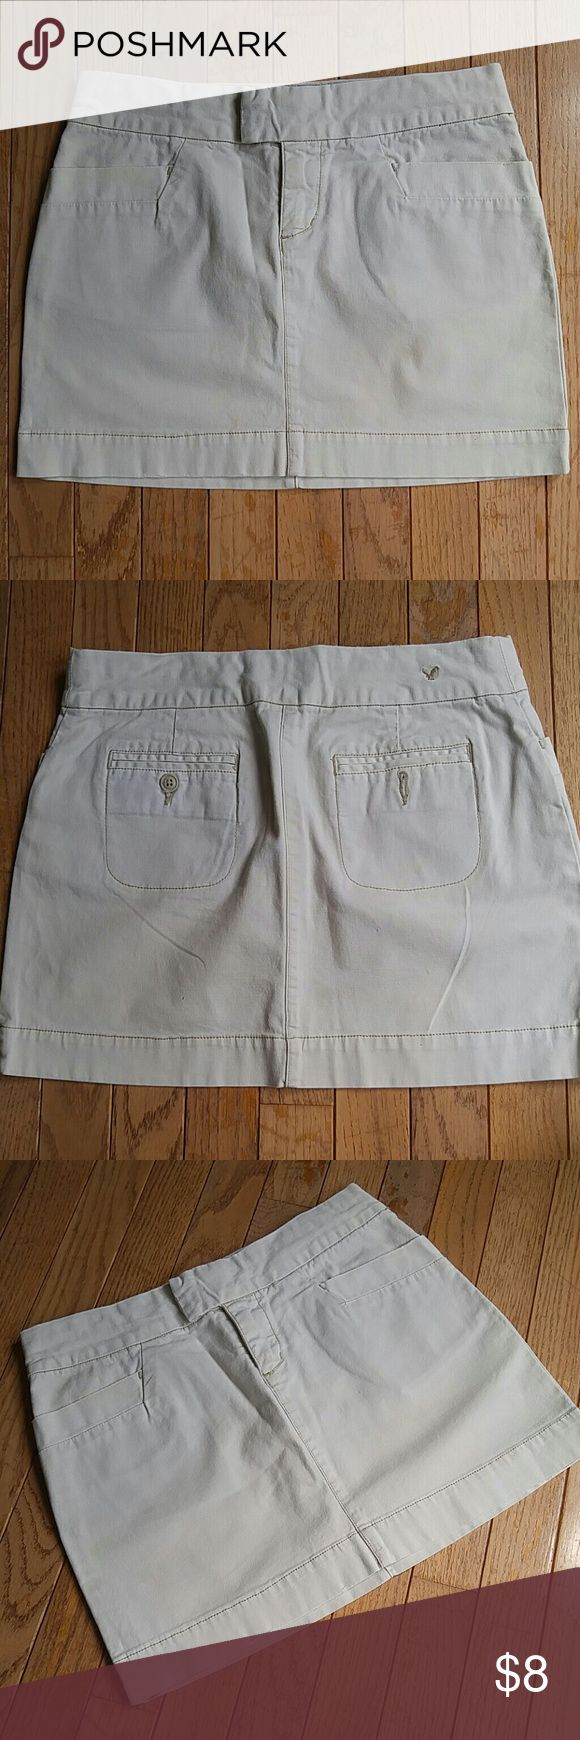 American Eagle Chino Skirt Khaki mini skirt from American Eagle. Size 0. Some marks and wear as pictured, but still lots of life left! American Eagle Outfitters Skirts Mini